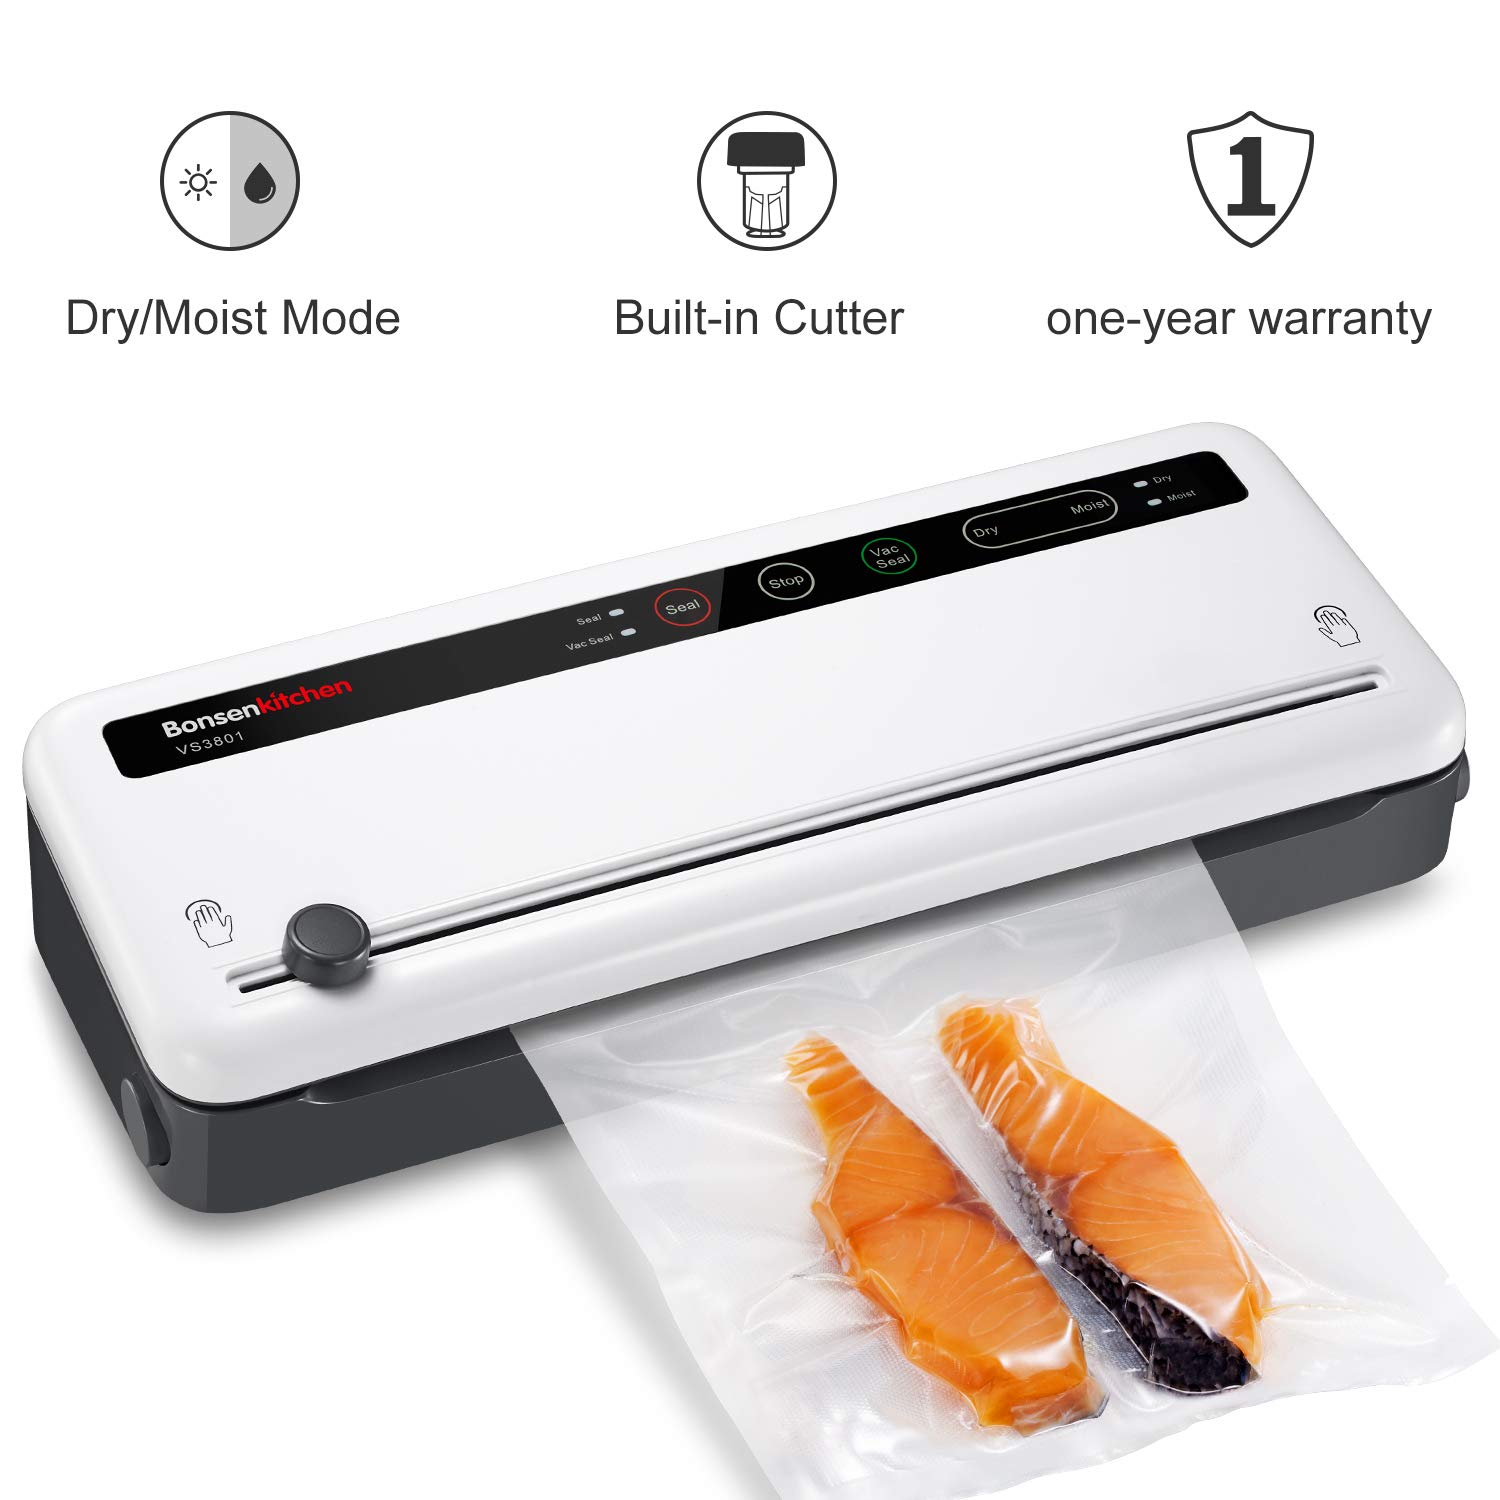 Bonsenkitchen Vacuum Sealer with Built-in Cutter & Roll Bag Storage, Lightweight Food Saver for Dry and Moist Food Fresh Preservation, Vacuum Roll Bags & Hose Included by Bonsenkitchen